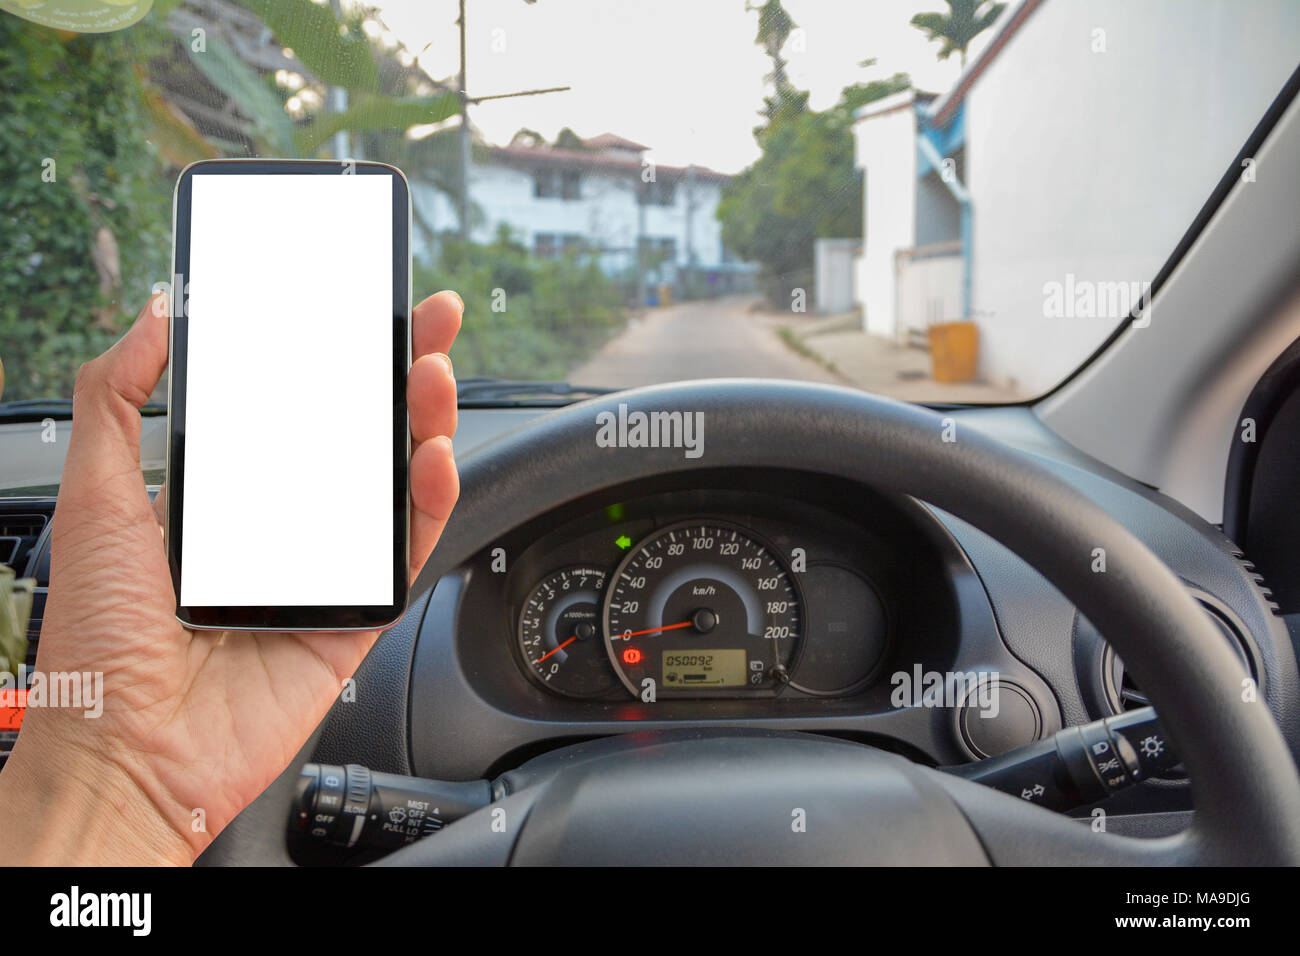 car and smart phone , using navigation app on smart phone. - Stock Image